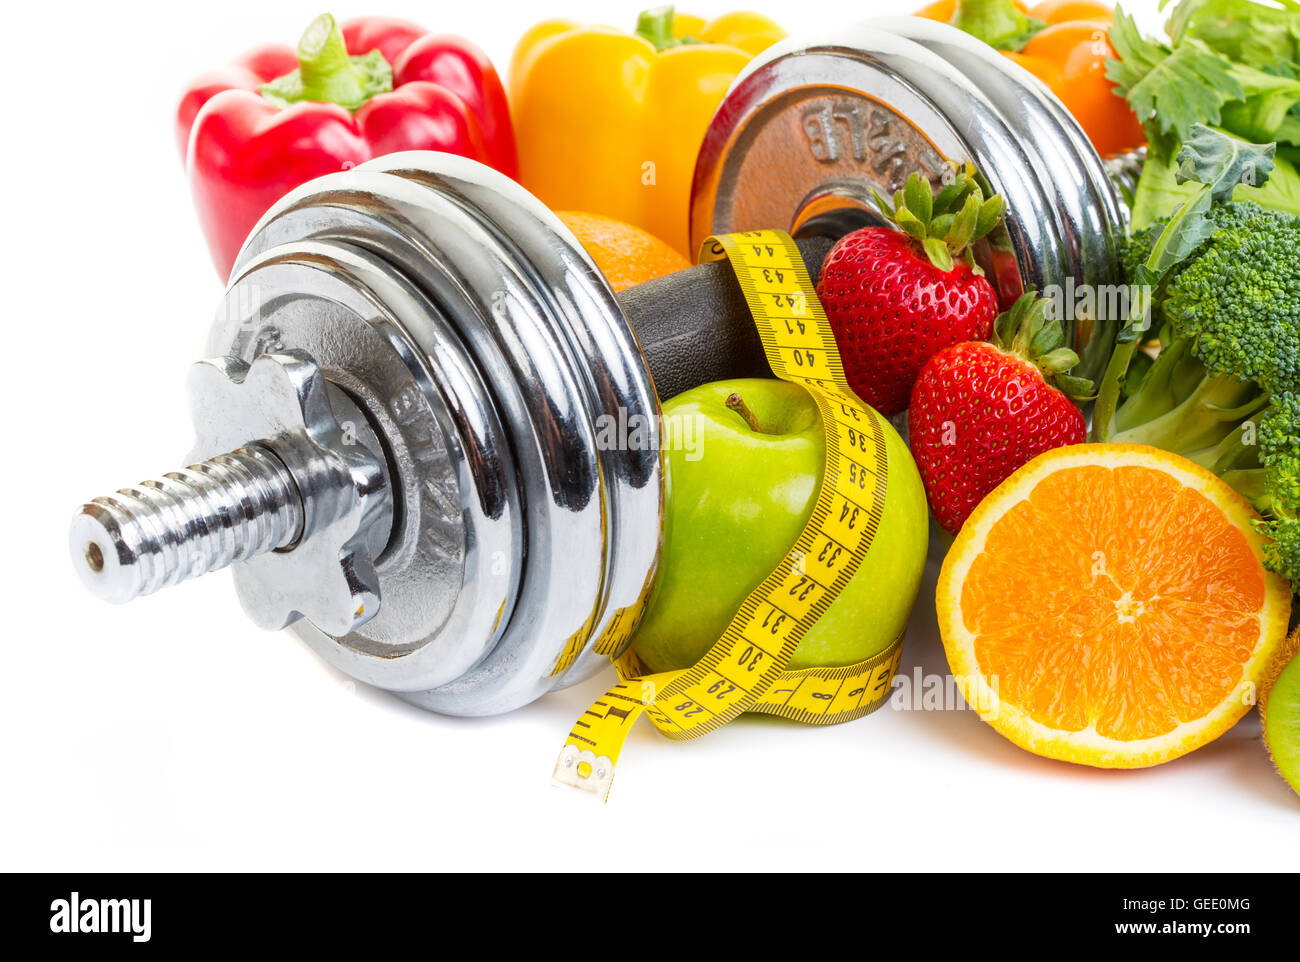 Chrome dumbbells surrounded with healthy fruits and vegetables on a white background. - Stock Image